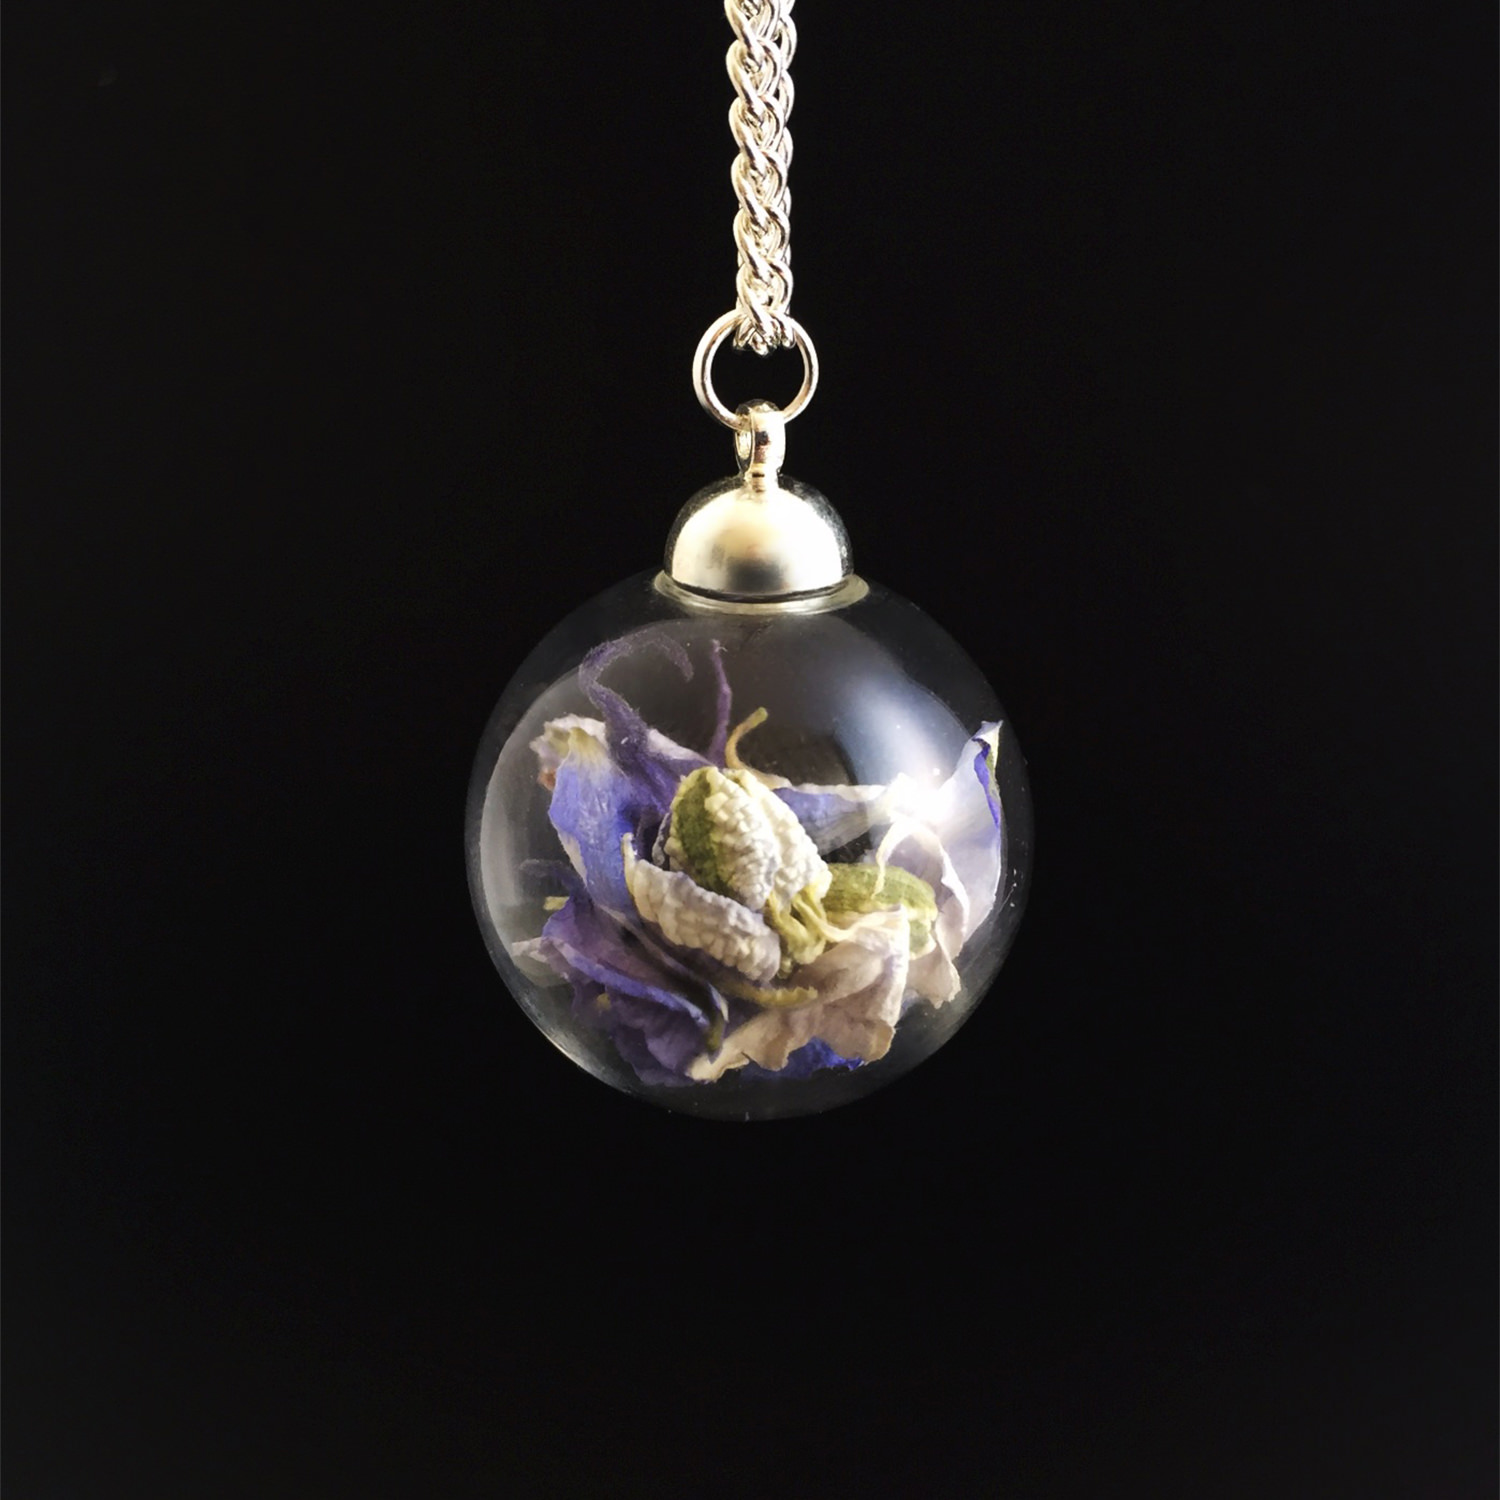 Statement Necklaces - Large Glass Sphere